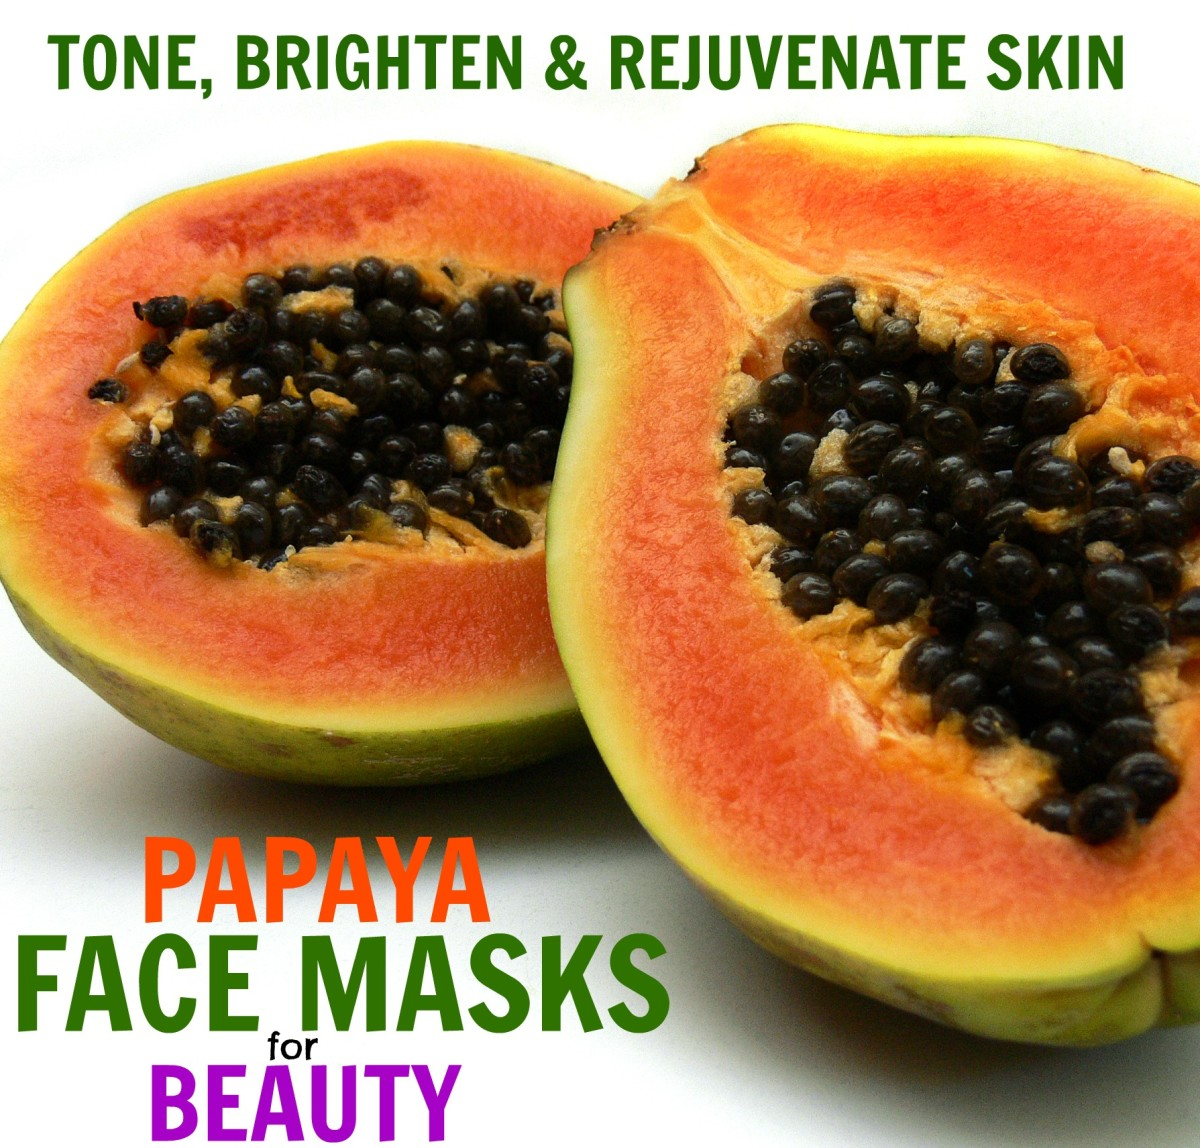 Skin-Lightening Papaya Face-Mask Recipes for Bright, Glowing Skin